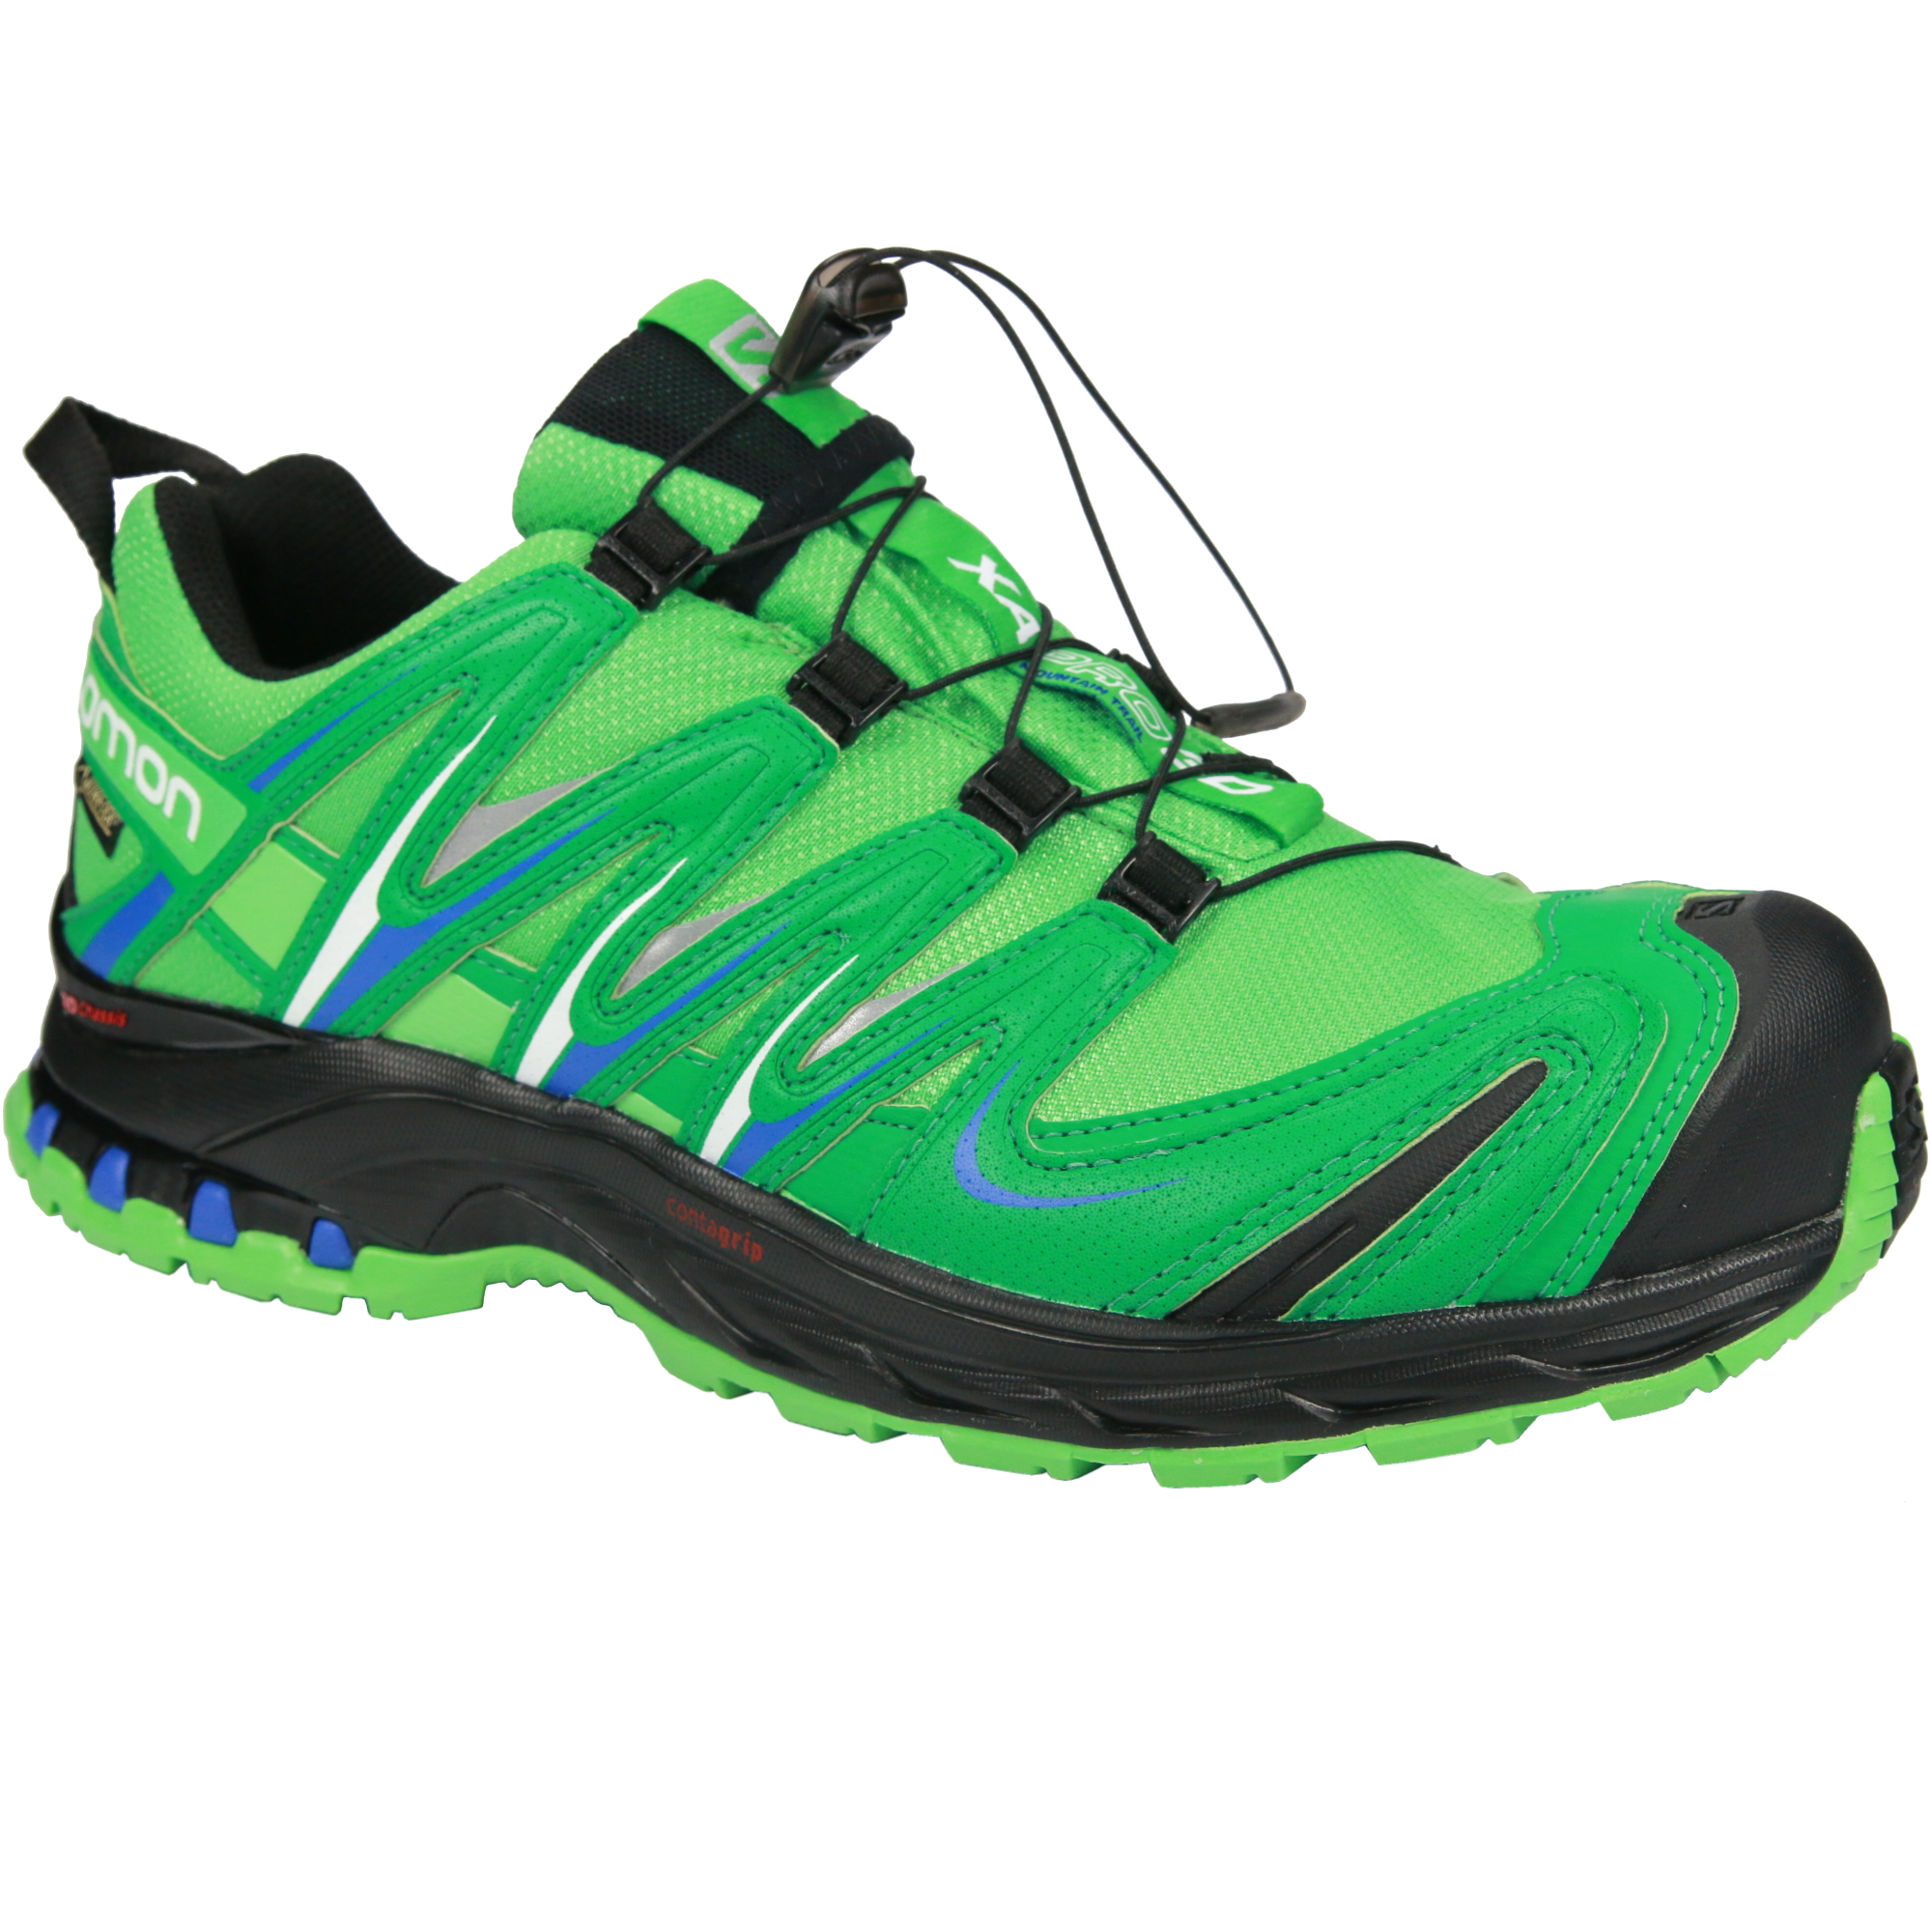 Salomon Trekking Goretex